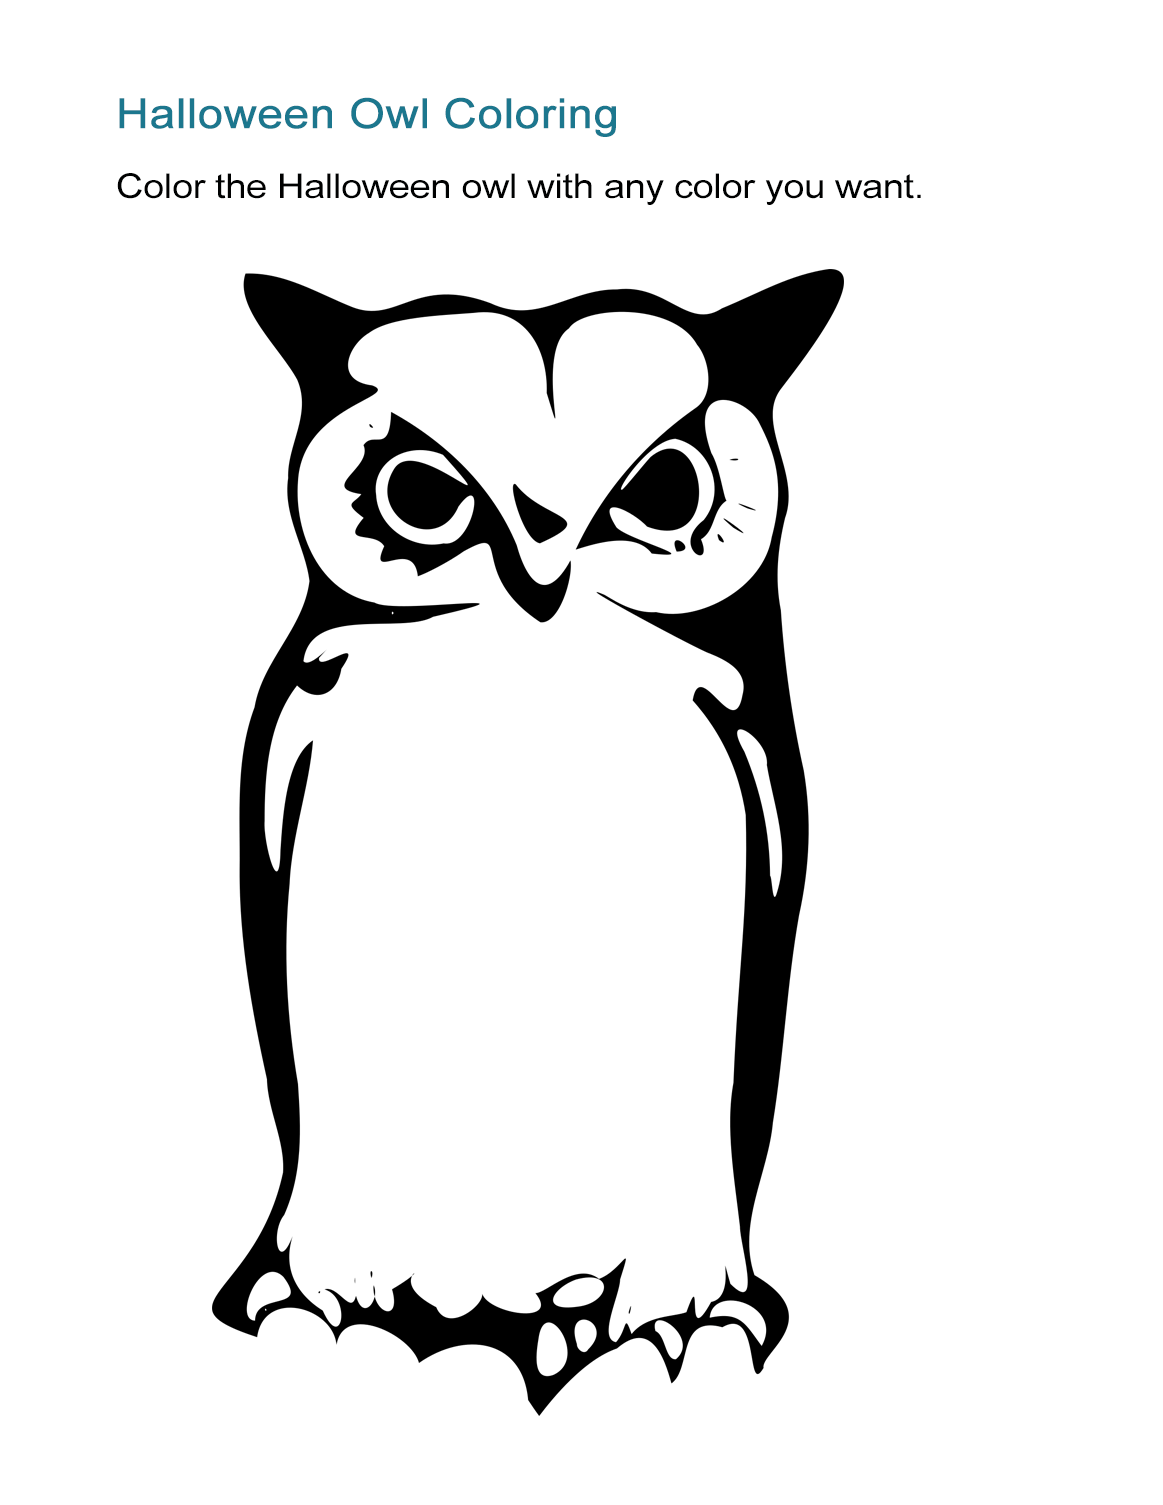 worksheet Owl Worksheets 10 halloween coloring sheets free and print ready all esl owl coloring